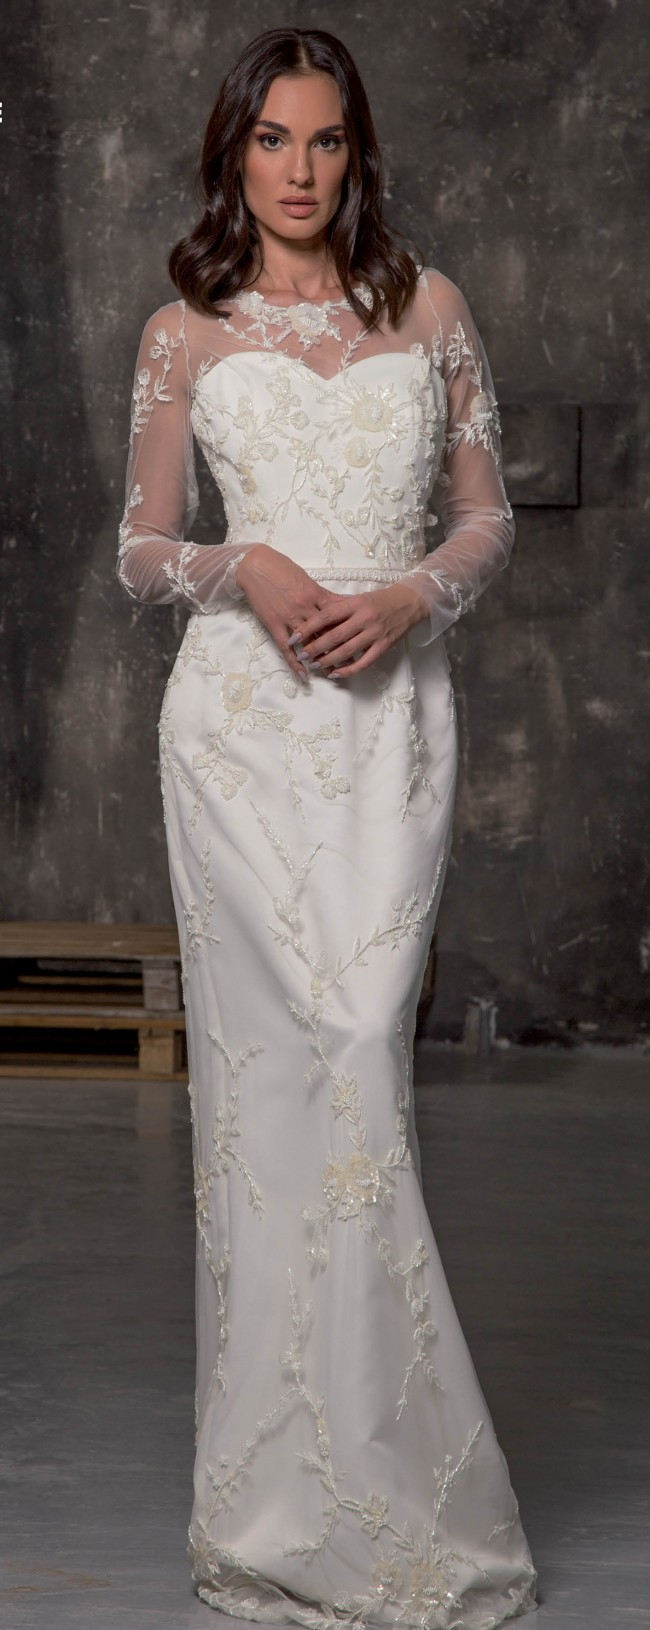 Maison Estrella  Mikado fabric dress with hand-embroidered French